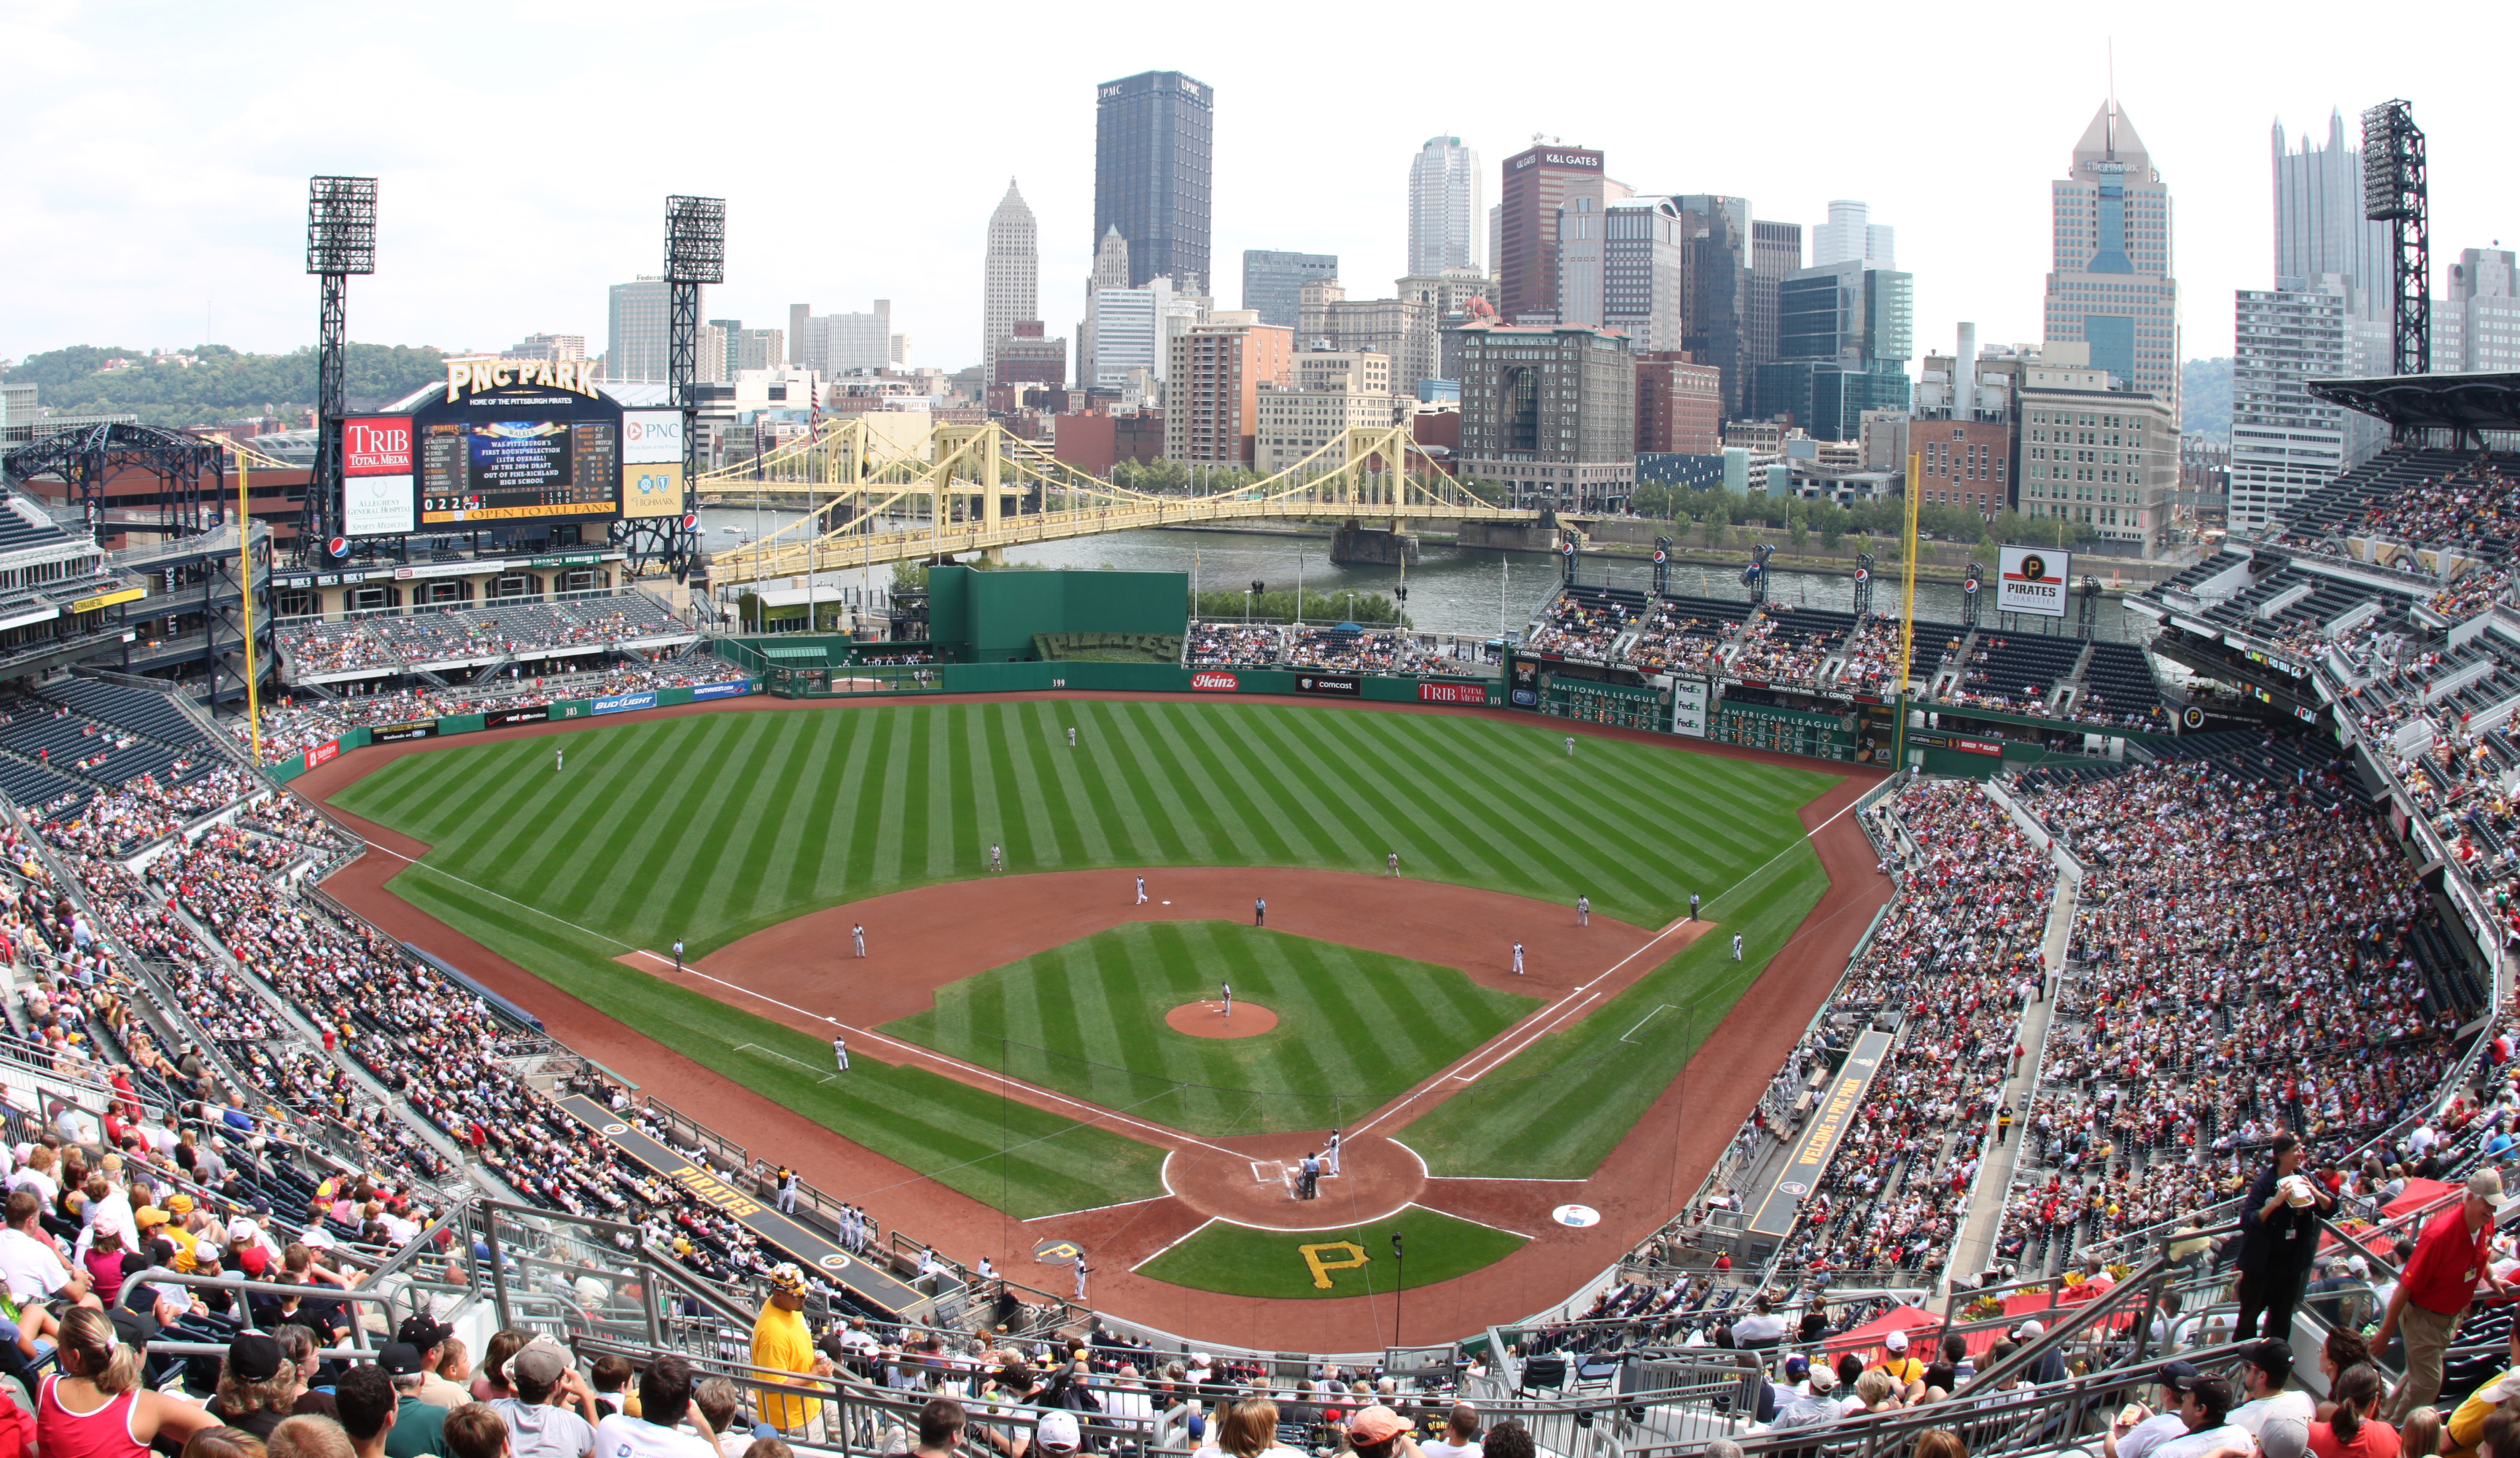 major league baseball 1 day ago  major league baseball will hold its 2018 draft on monday, june 4, 2018 (6/4/18)  the detroit tigers have the overall no 1 pick when the major.